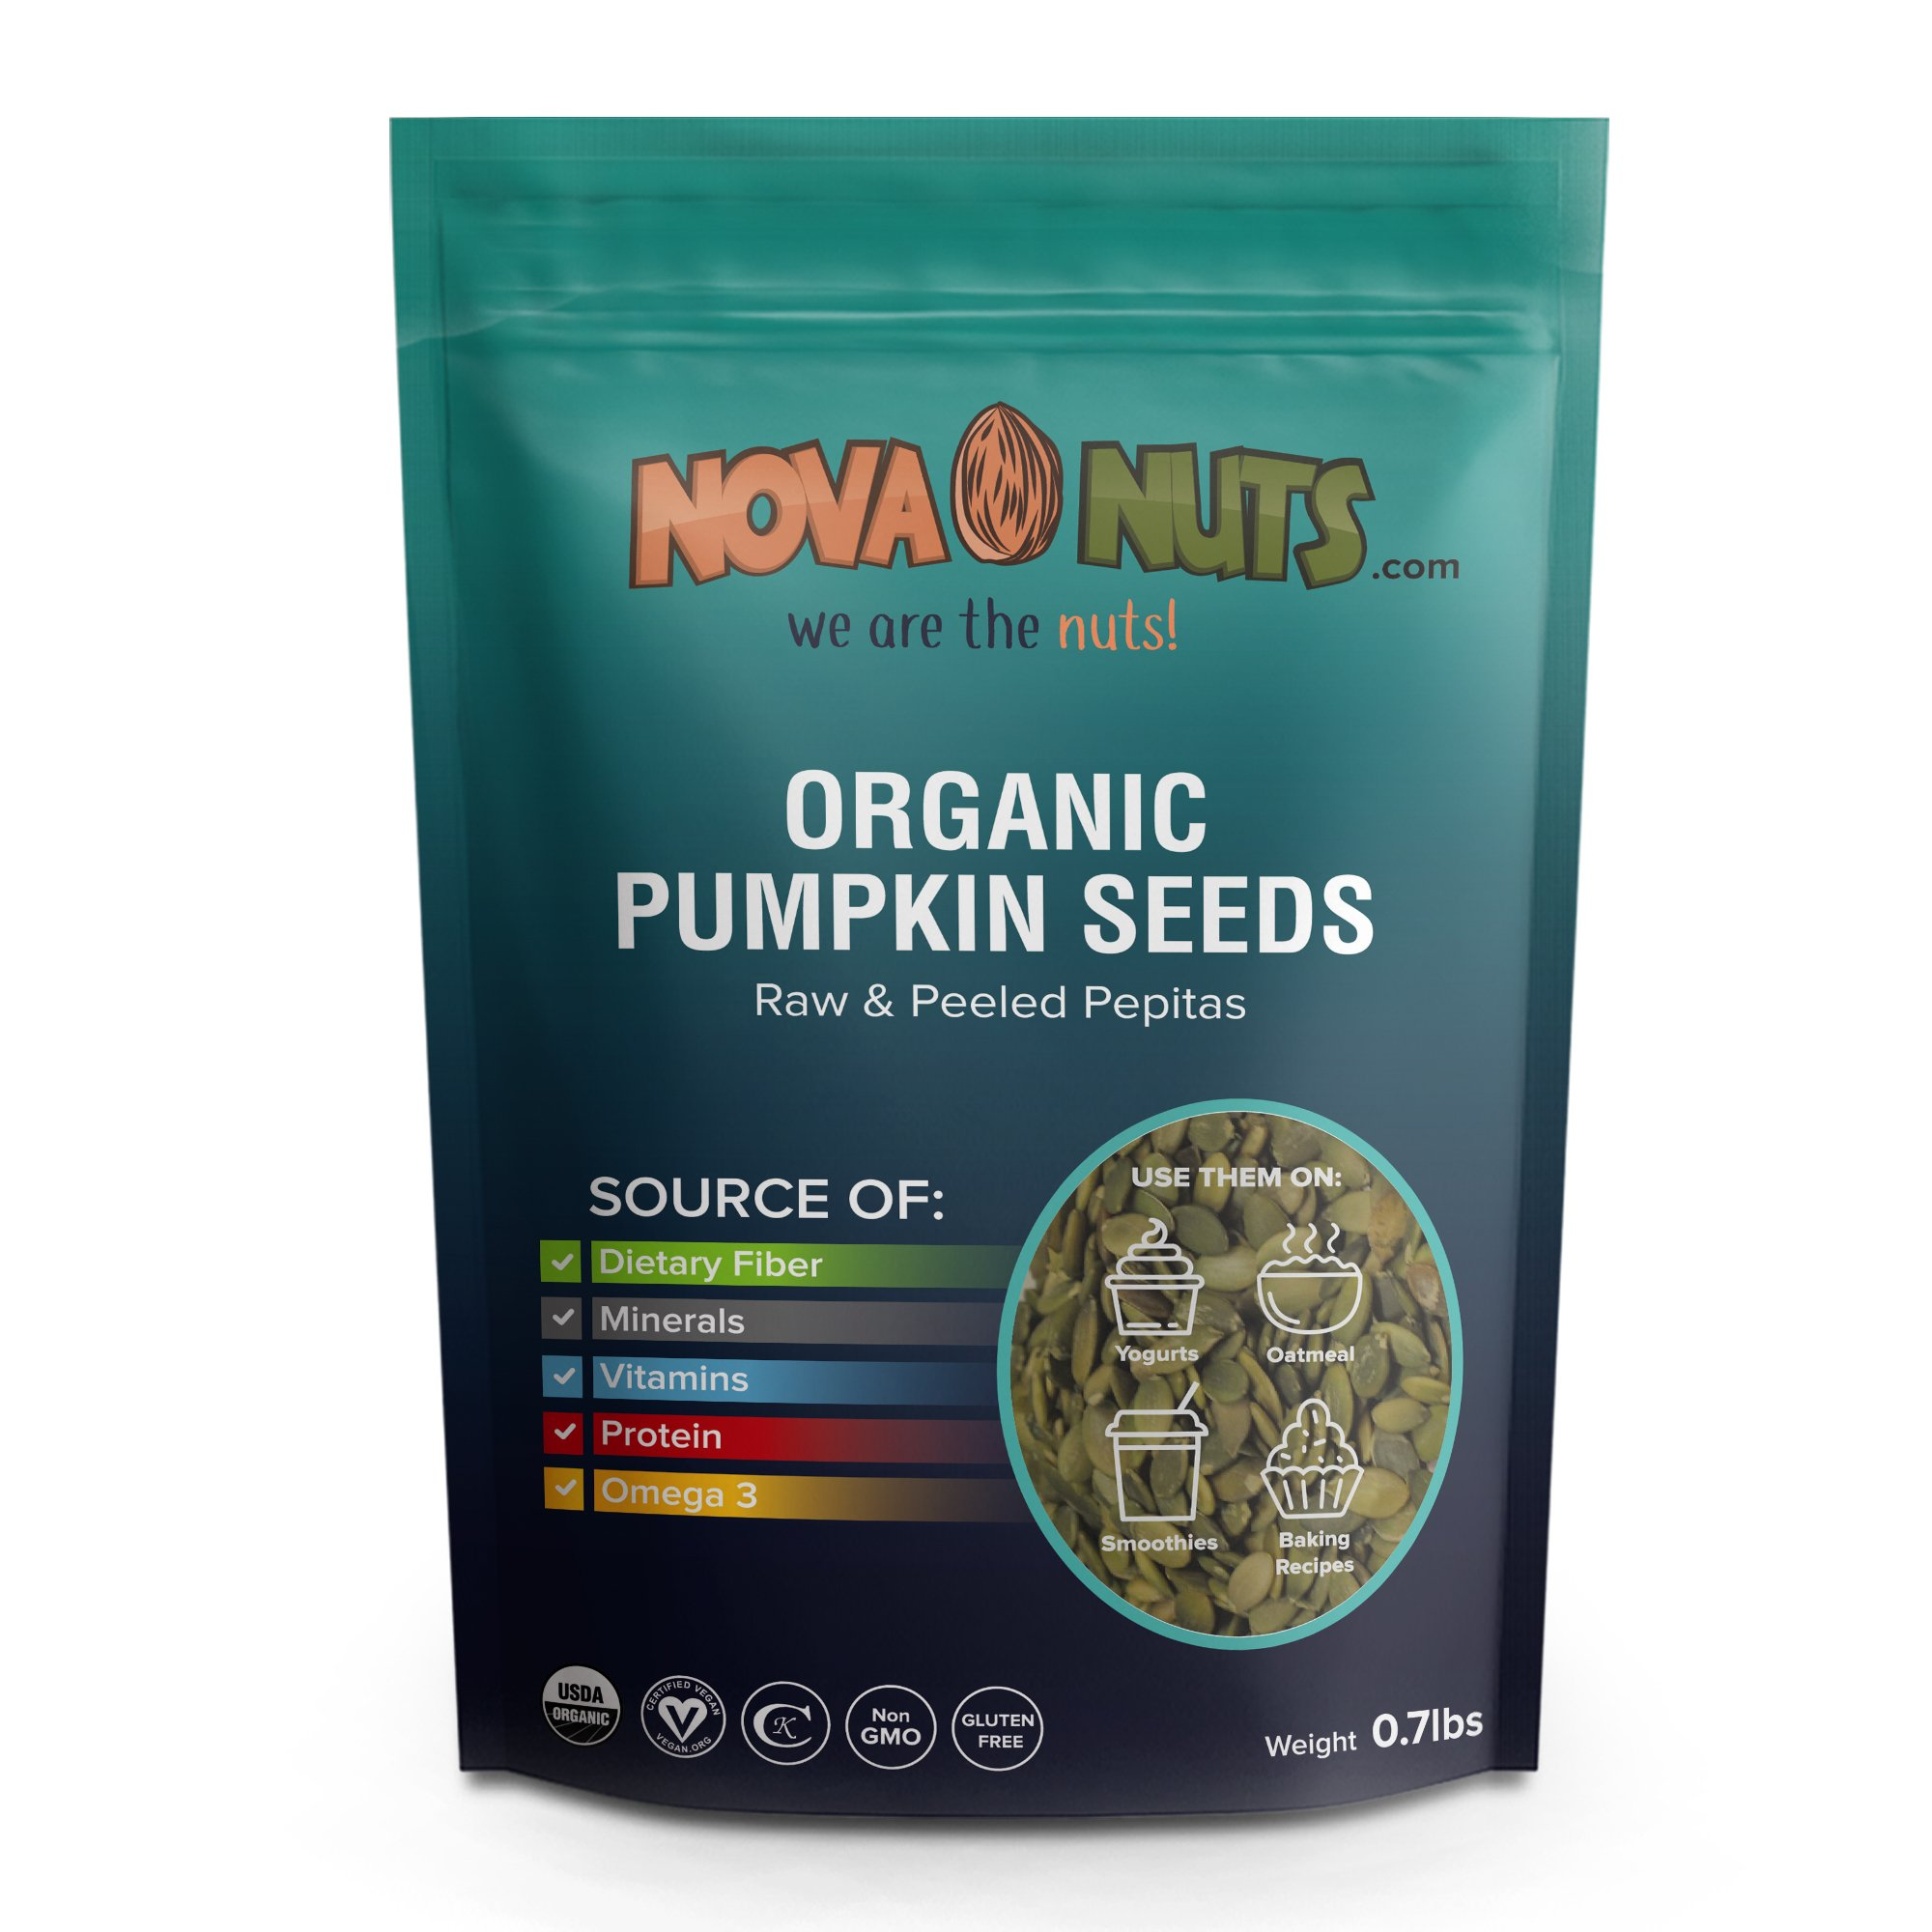 Organic Pumpkin Seeds By Nova Nuts - Natural Vitamins & Minerals from Raw Whole Foods (Pepitas 0.7 pounds)